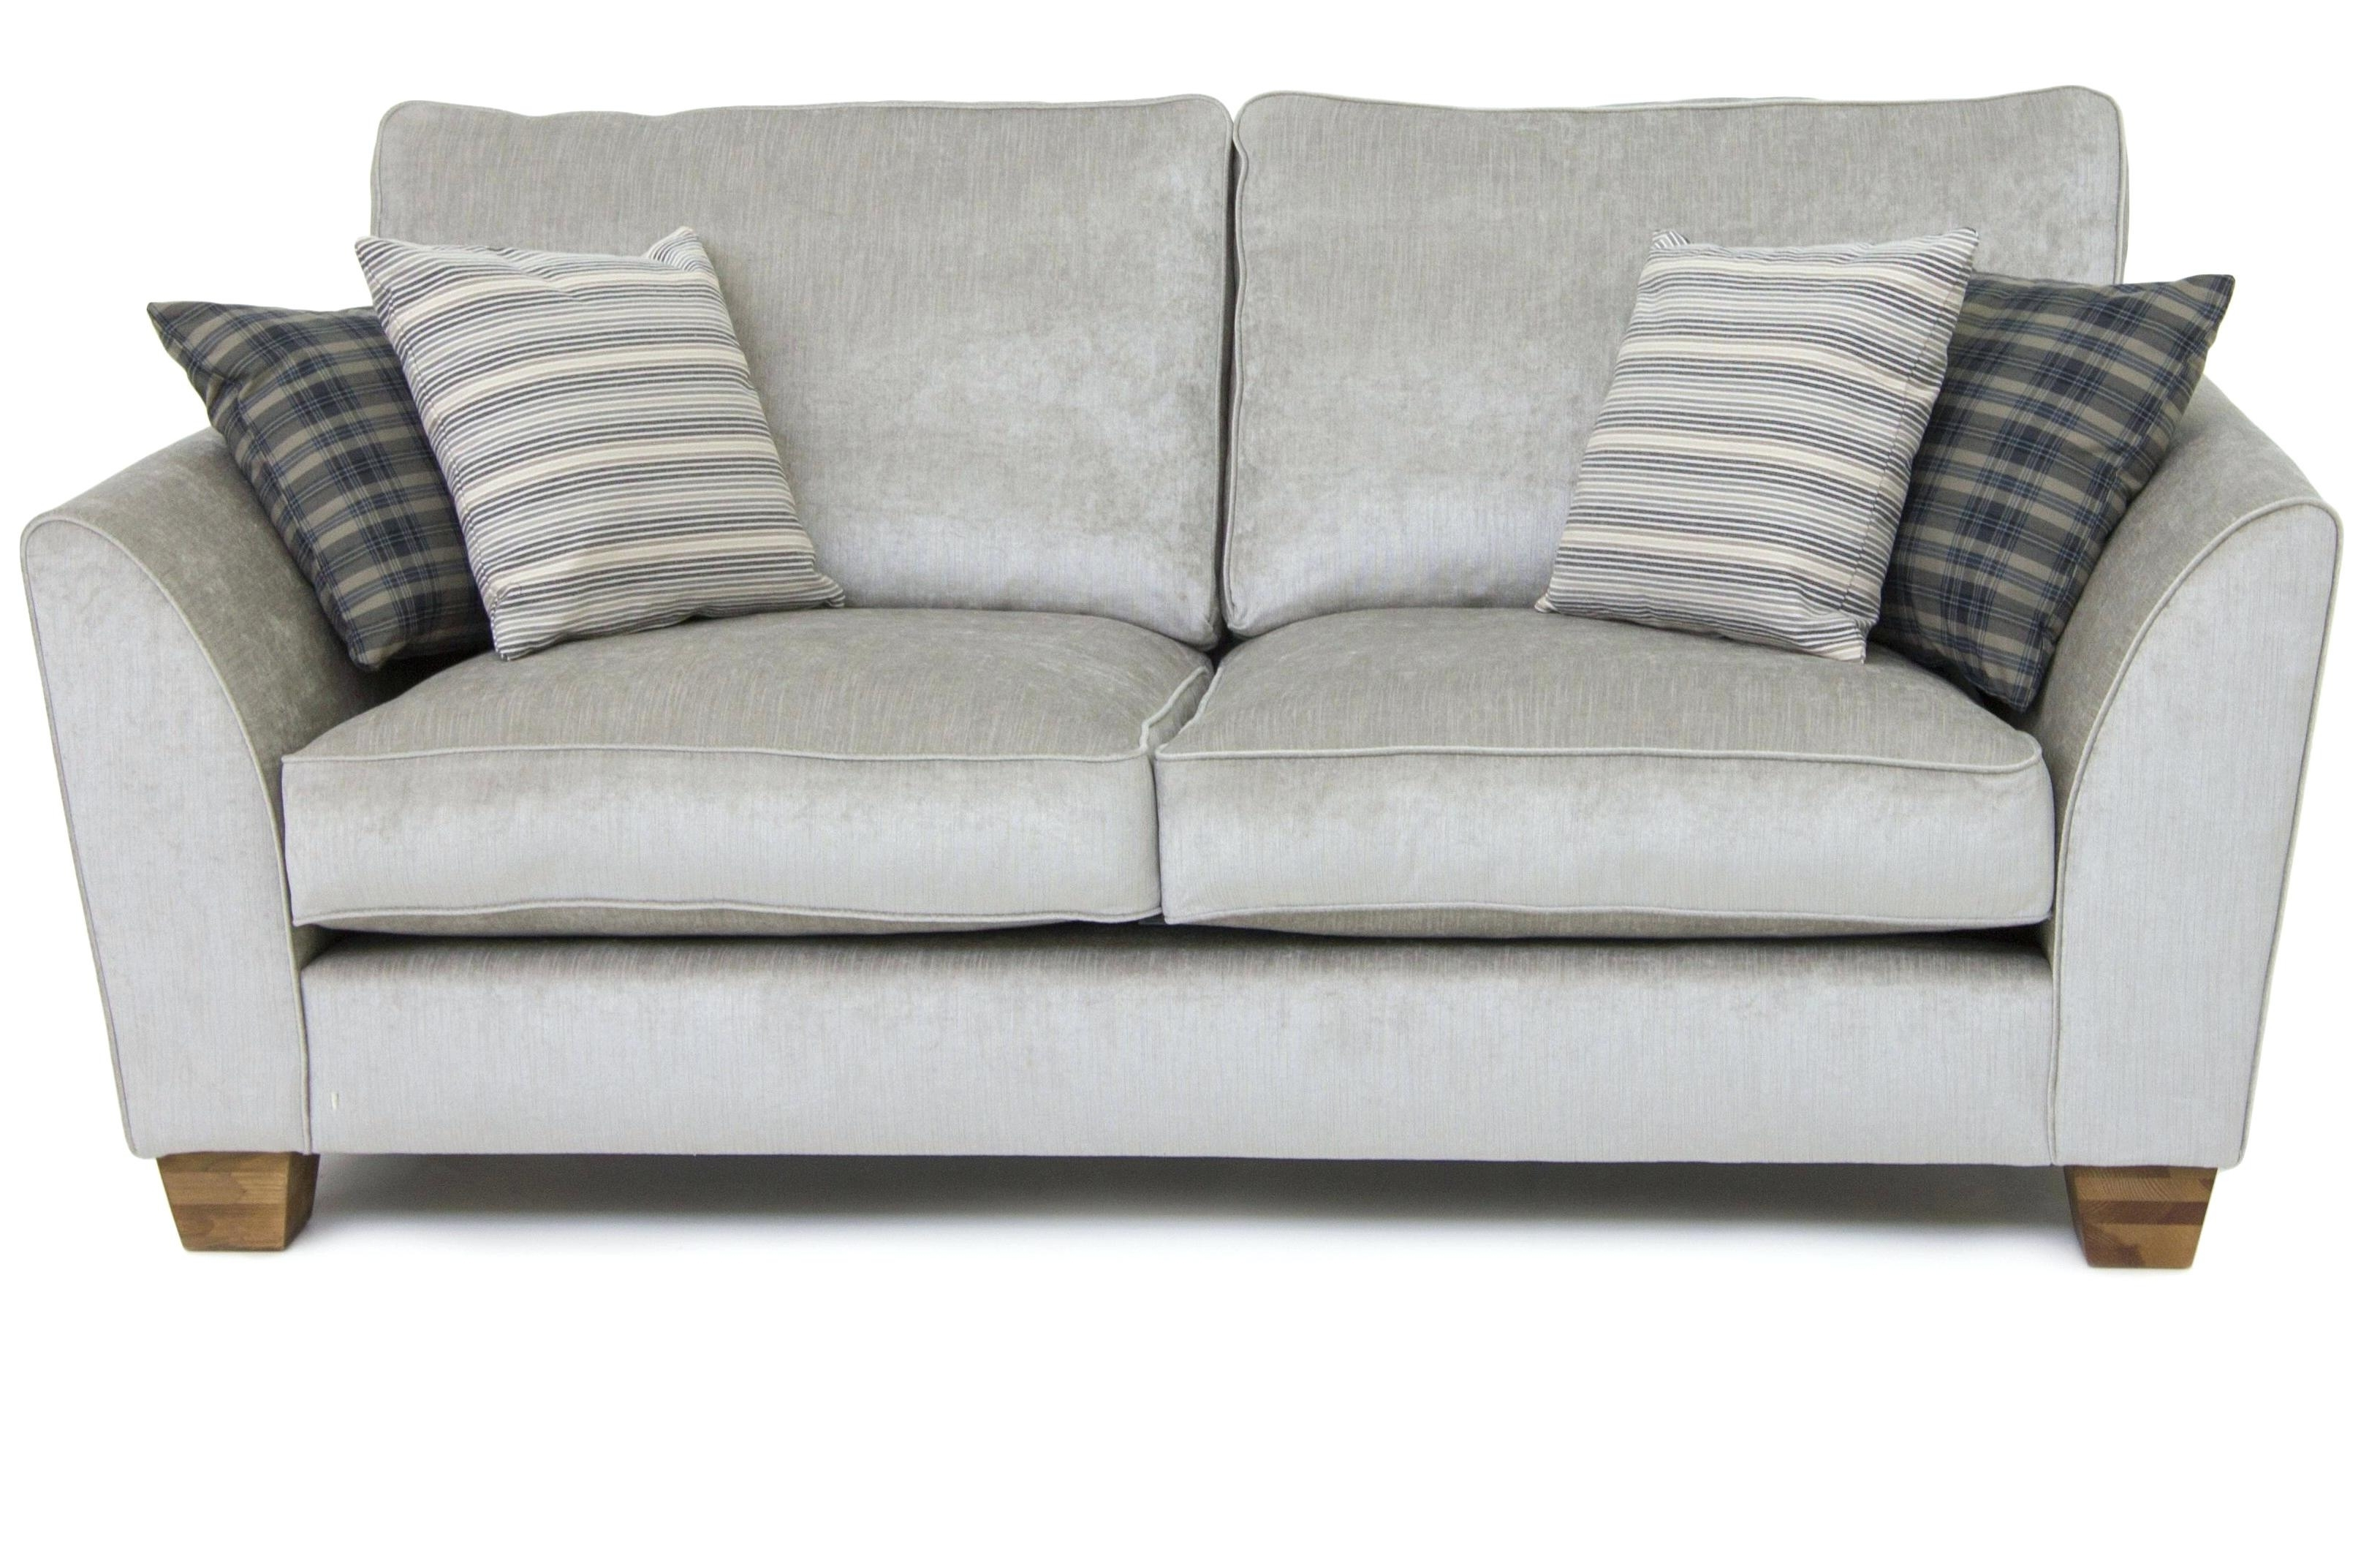 Fashionable Small 2 Seater Sofa – Kaoaz In Small 2 Seater Sofas (View 10 of 15)